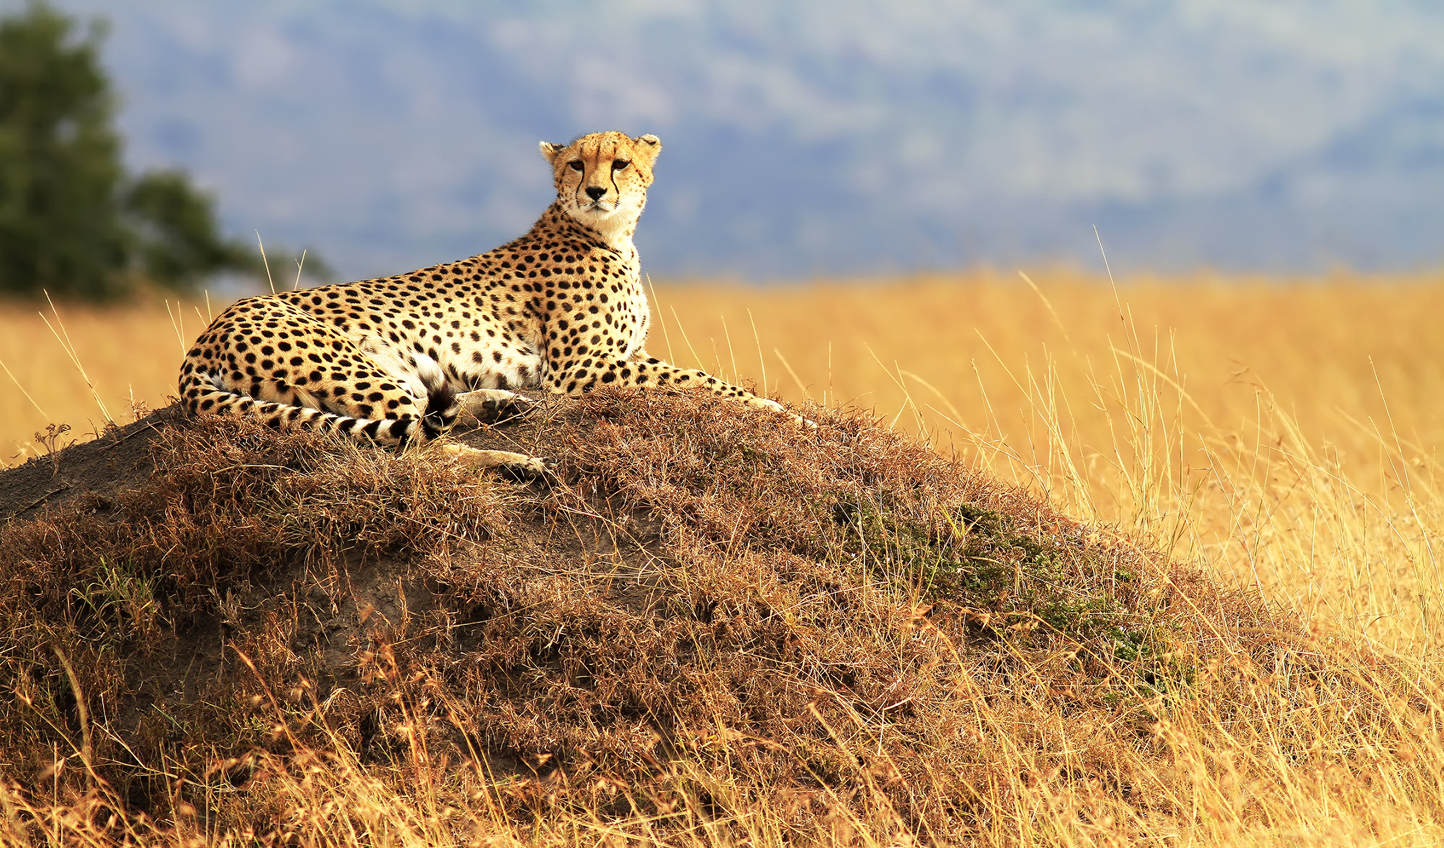 A cheetah overlooking the wild plains